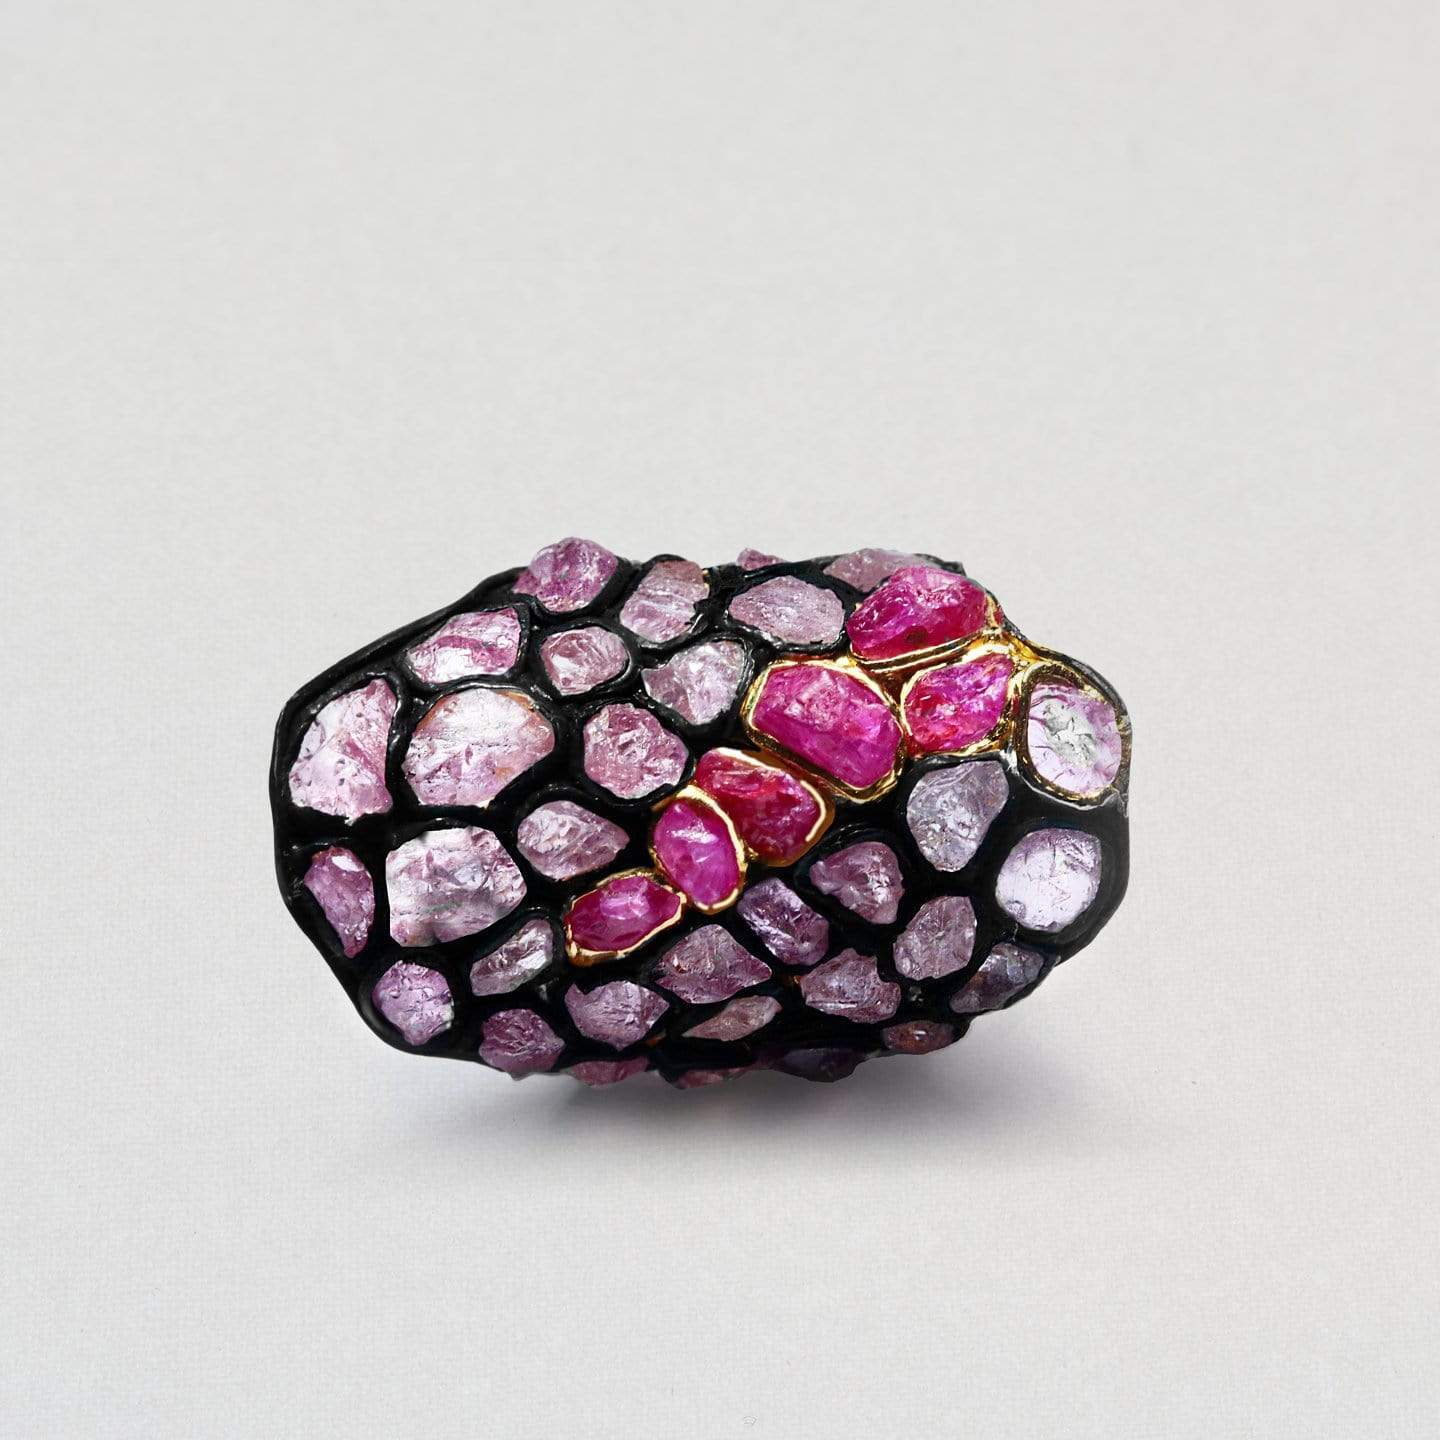 Ceponia Ring, Anthracite, black, Exclusive, Gold, Ruby, Spinel, spo-disabled, StoneColor:PinkRuby, Style:Statement, Type:StainedGlass Ring